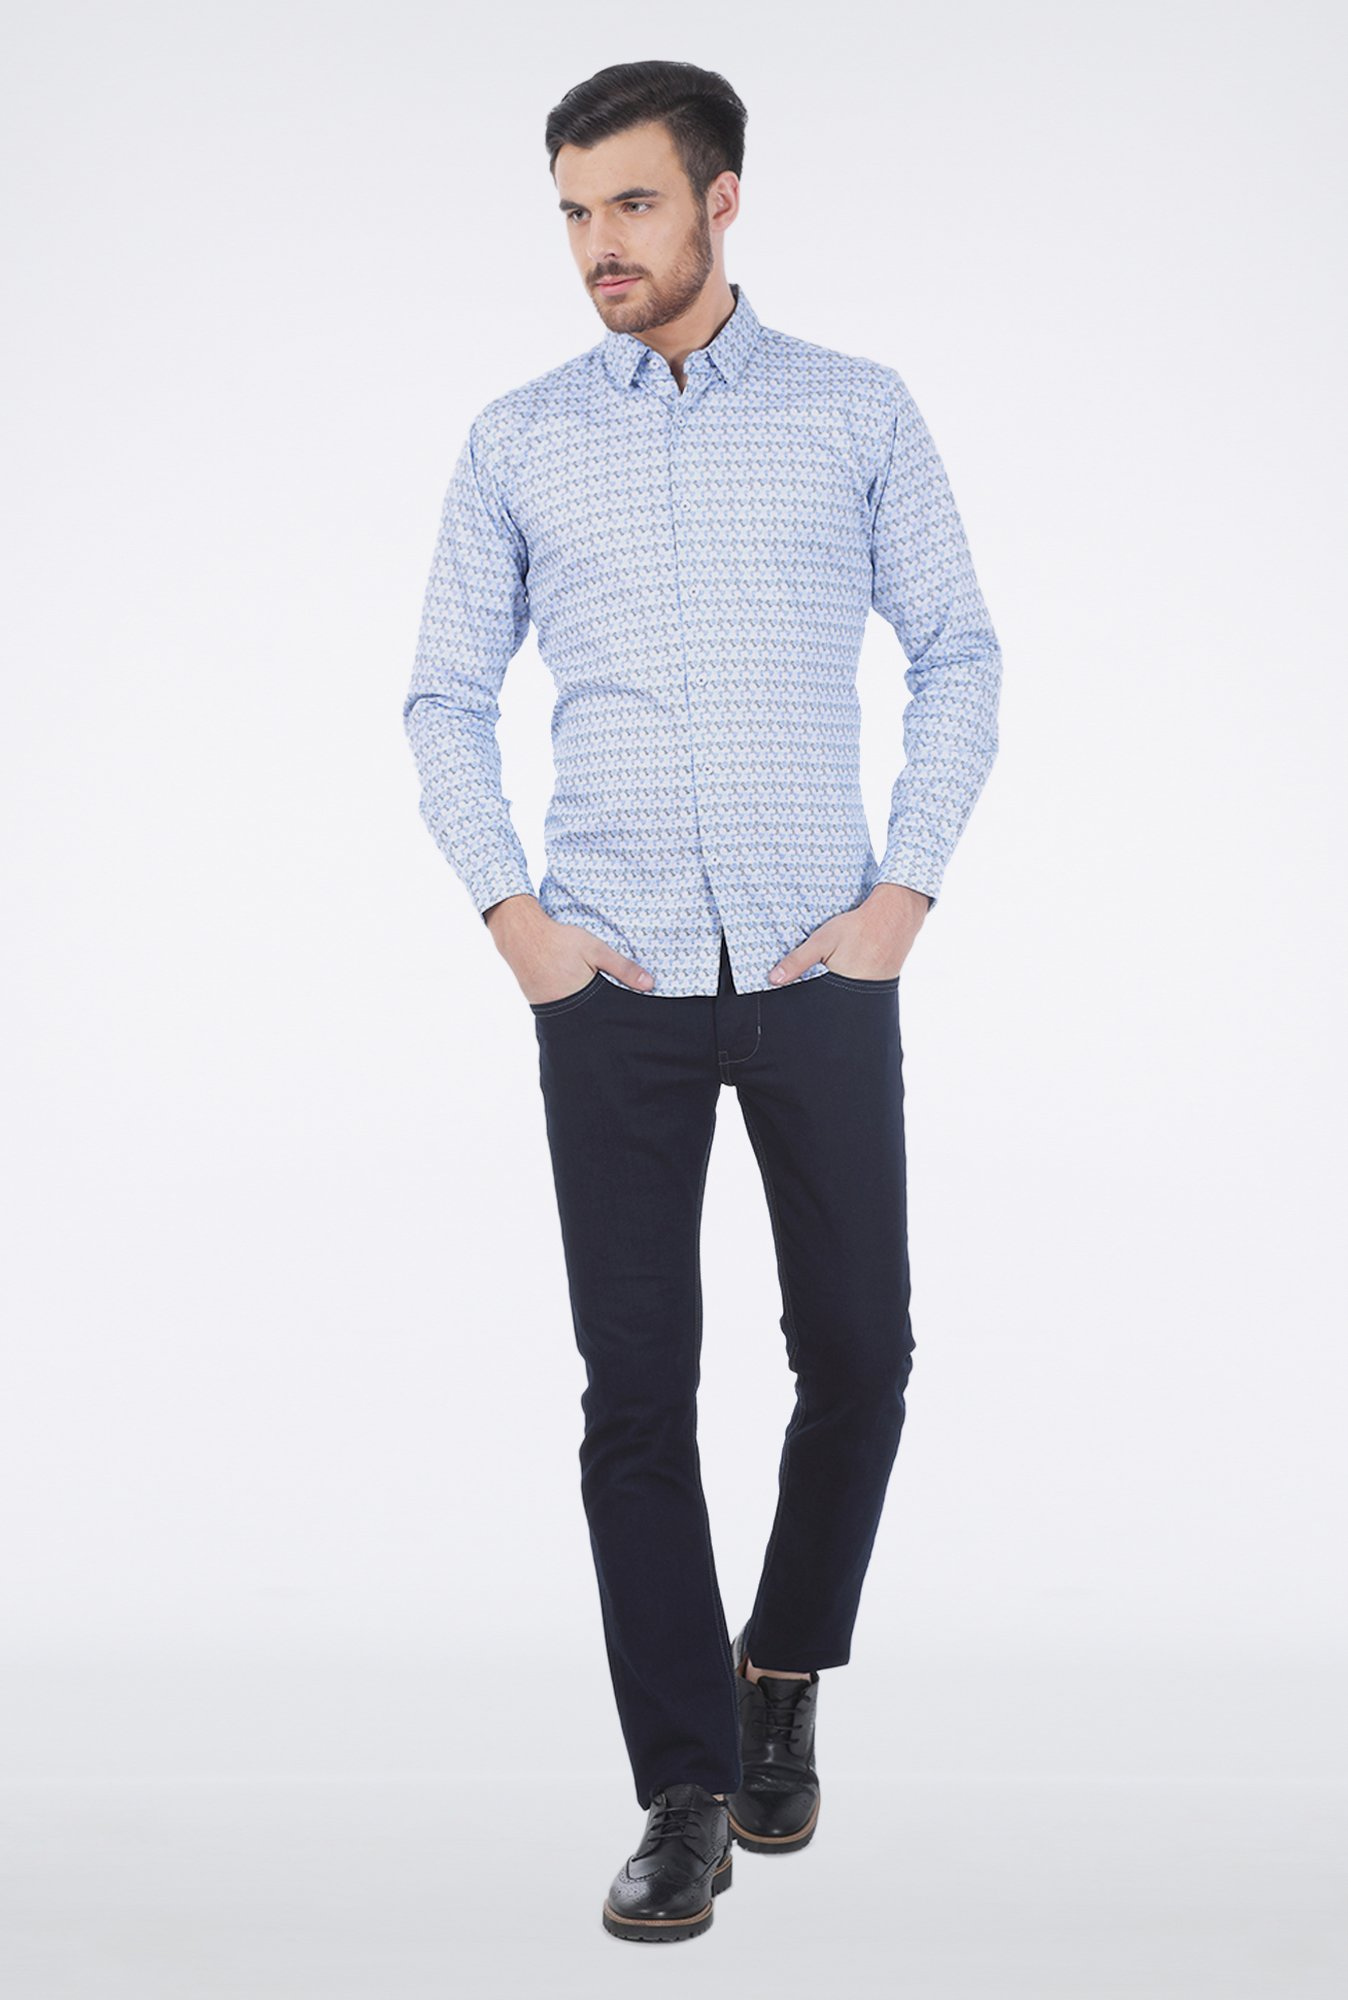 Basics Blue Eddy Printed Shirt